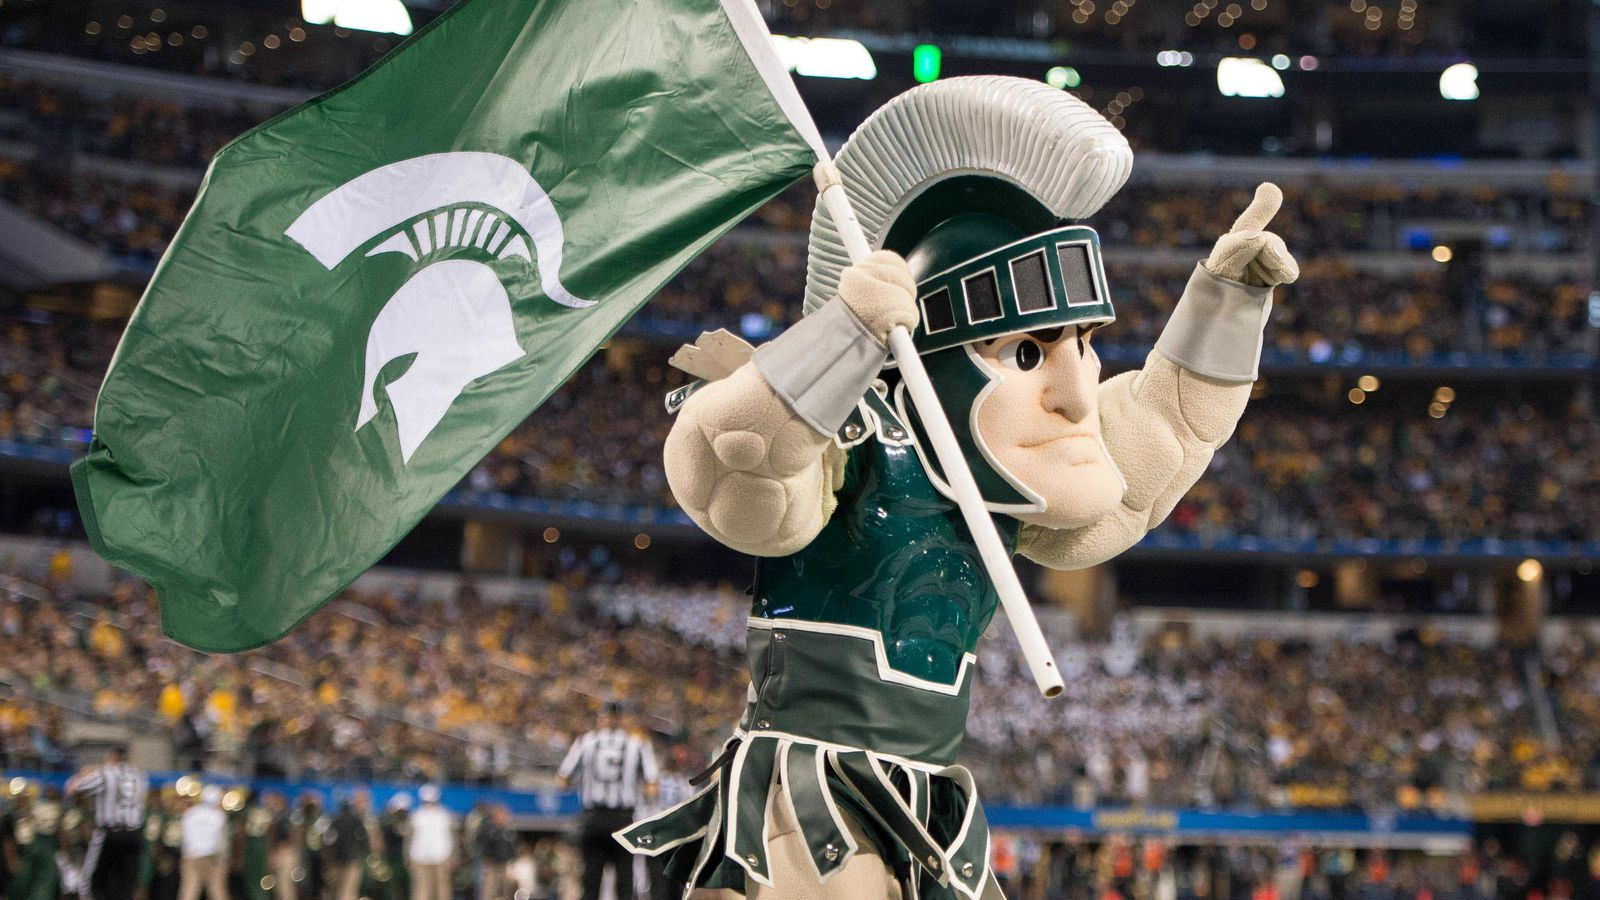 Byu Football Schedules Michigan State For Games In 2016